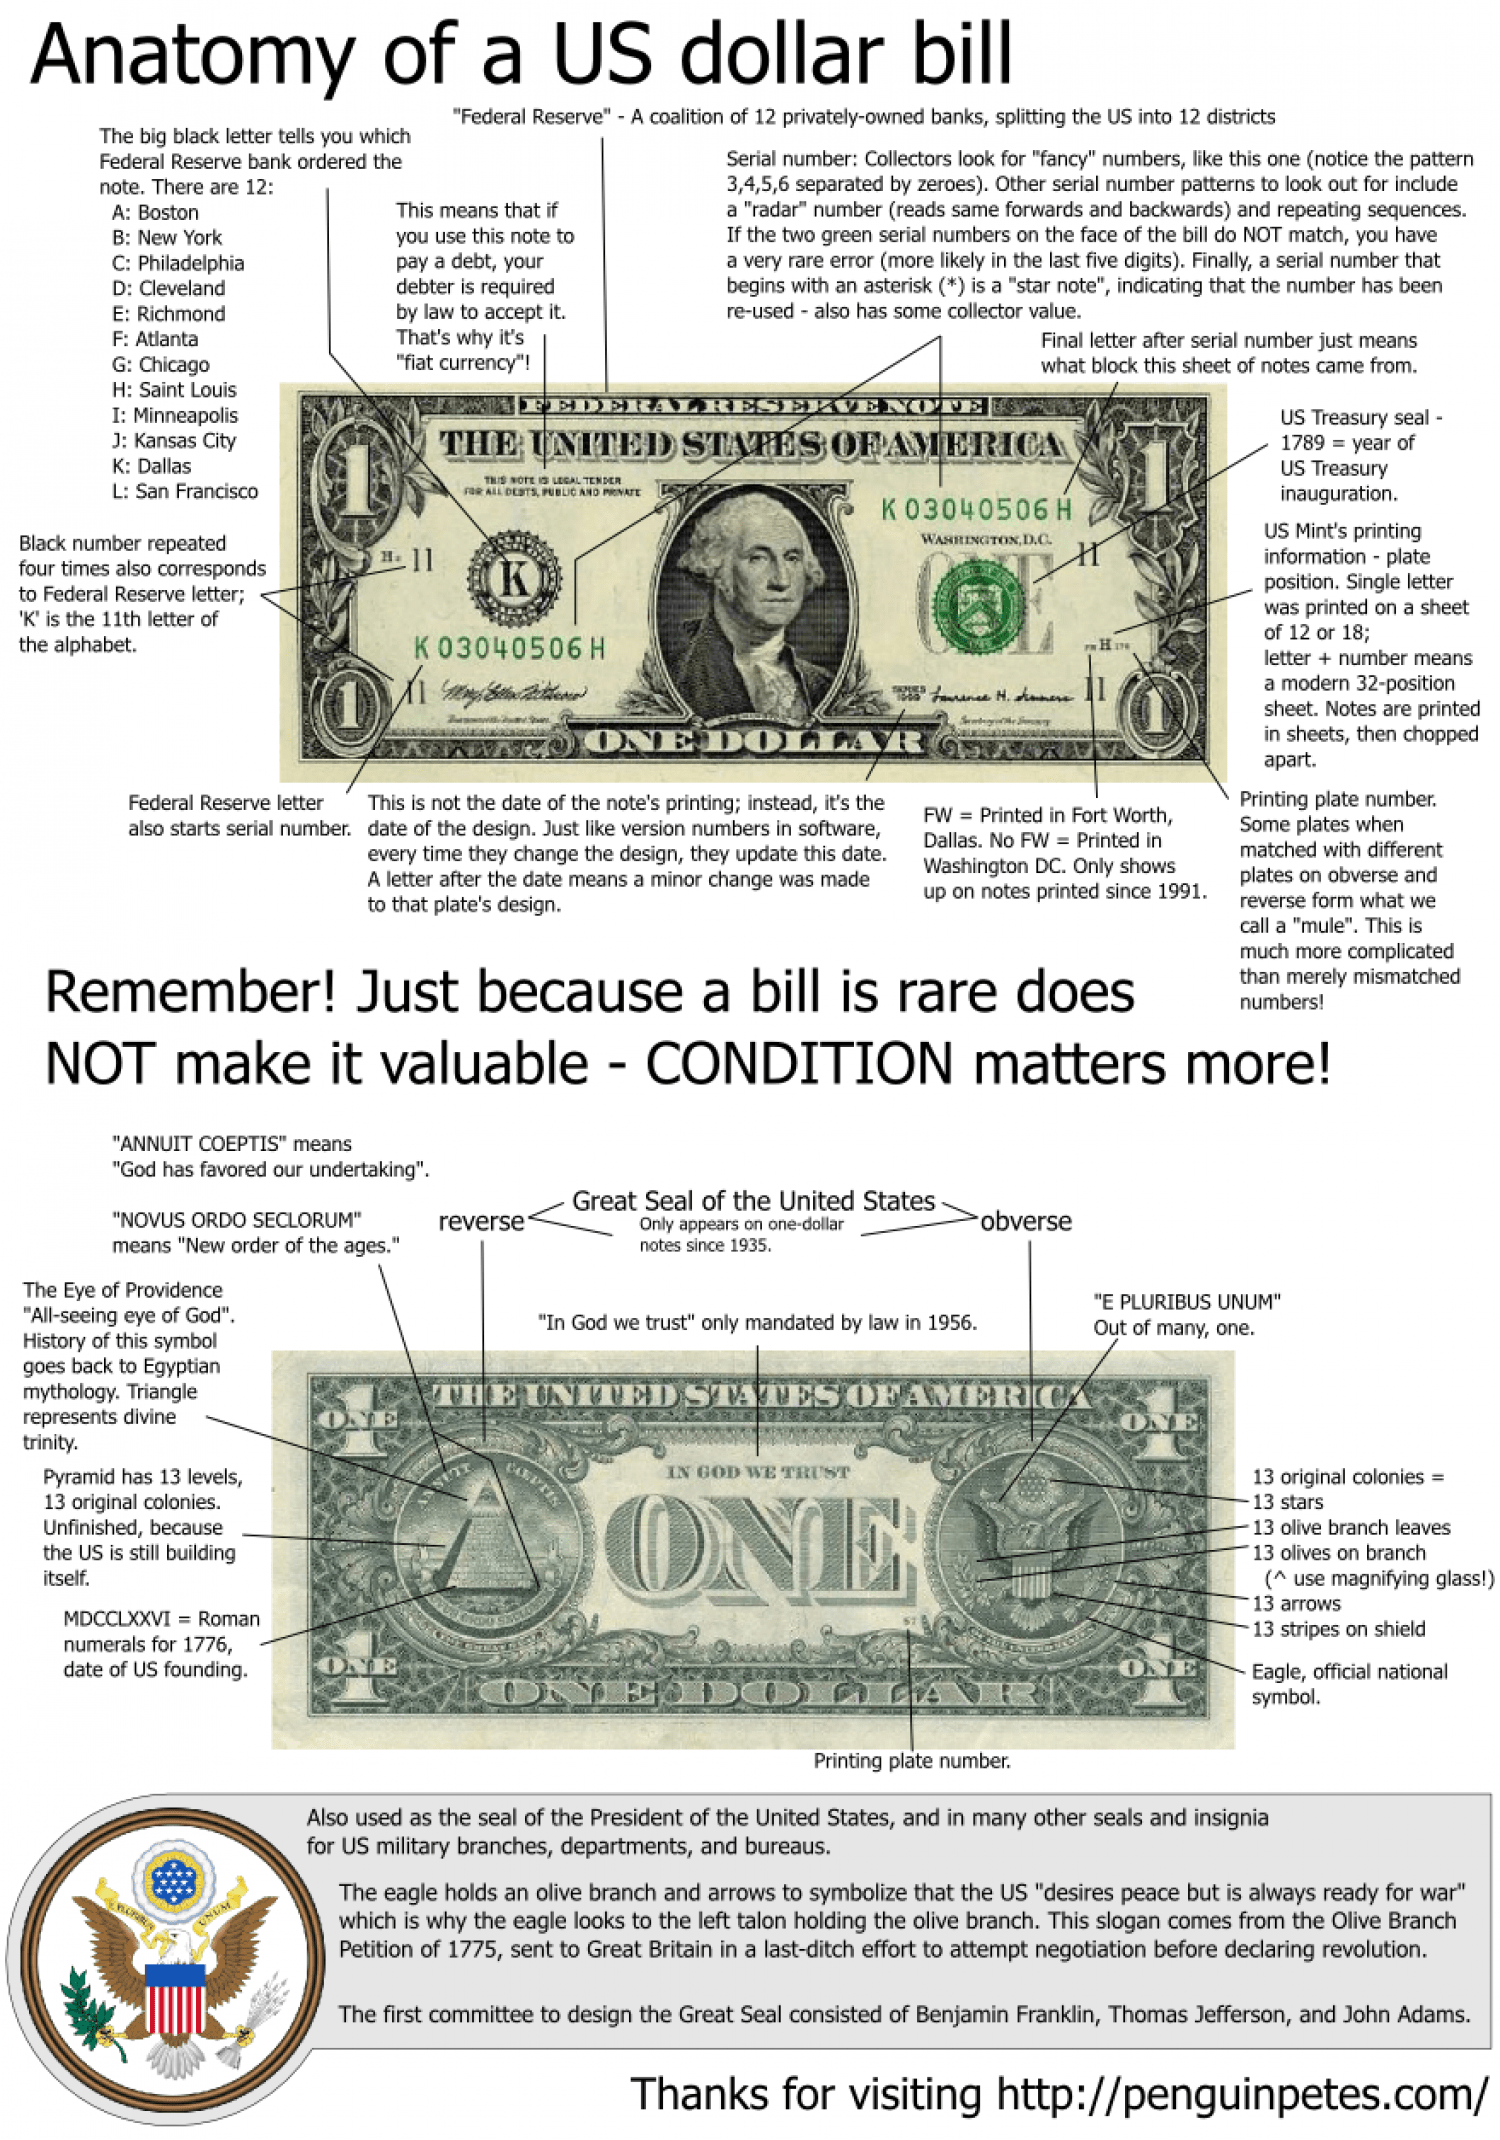 Anatomy Of A U S Dollar Bill